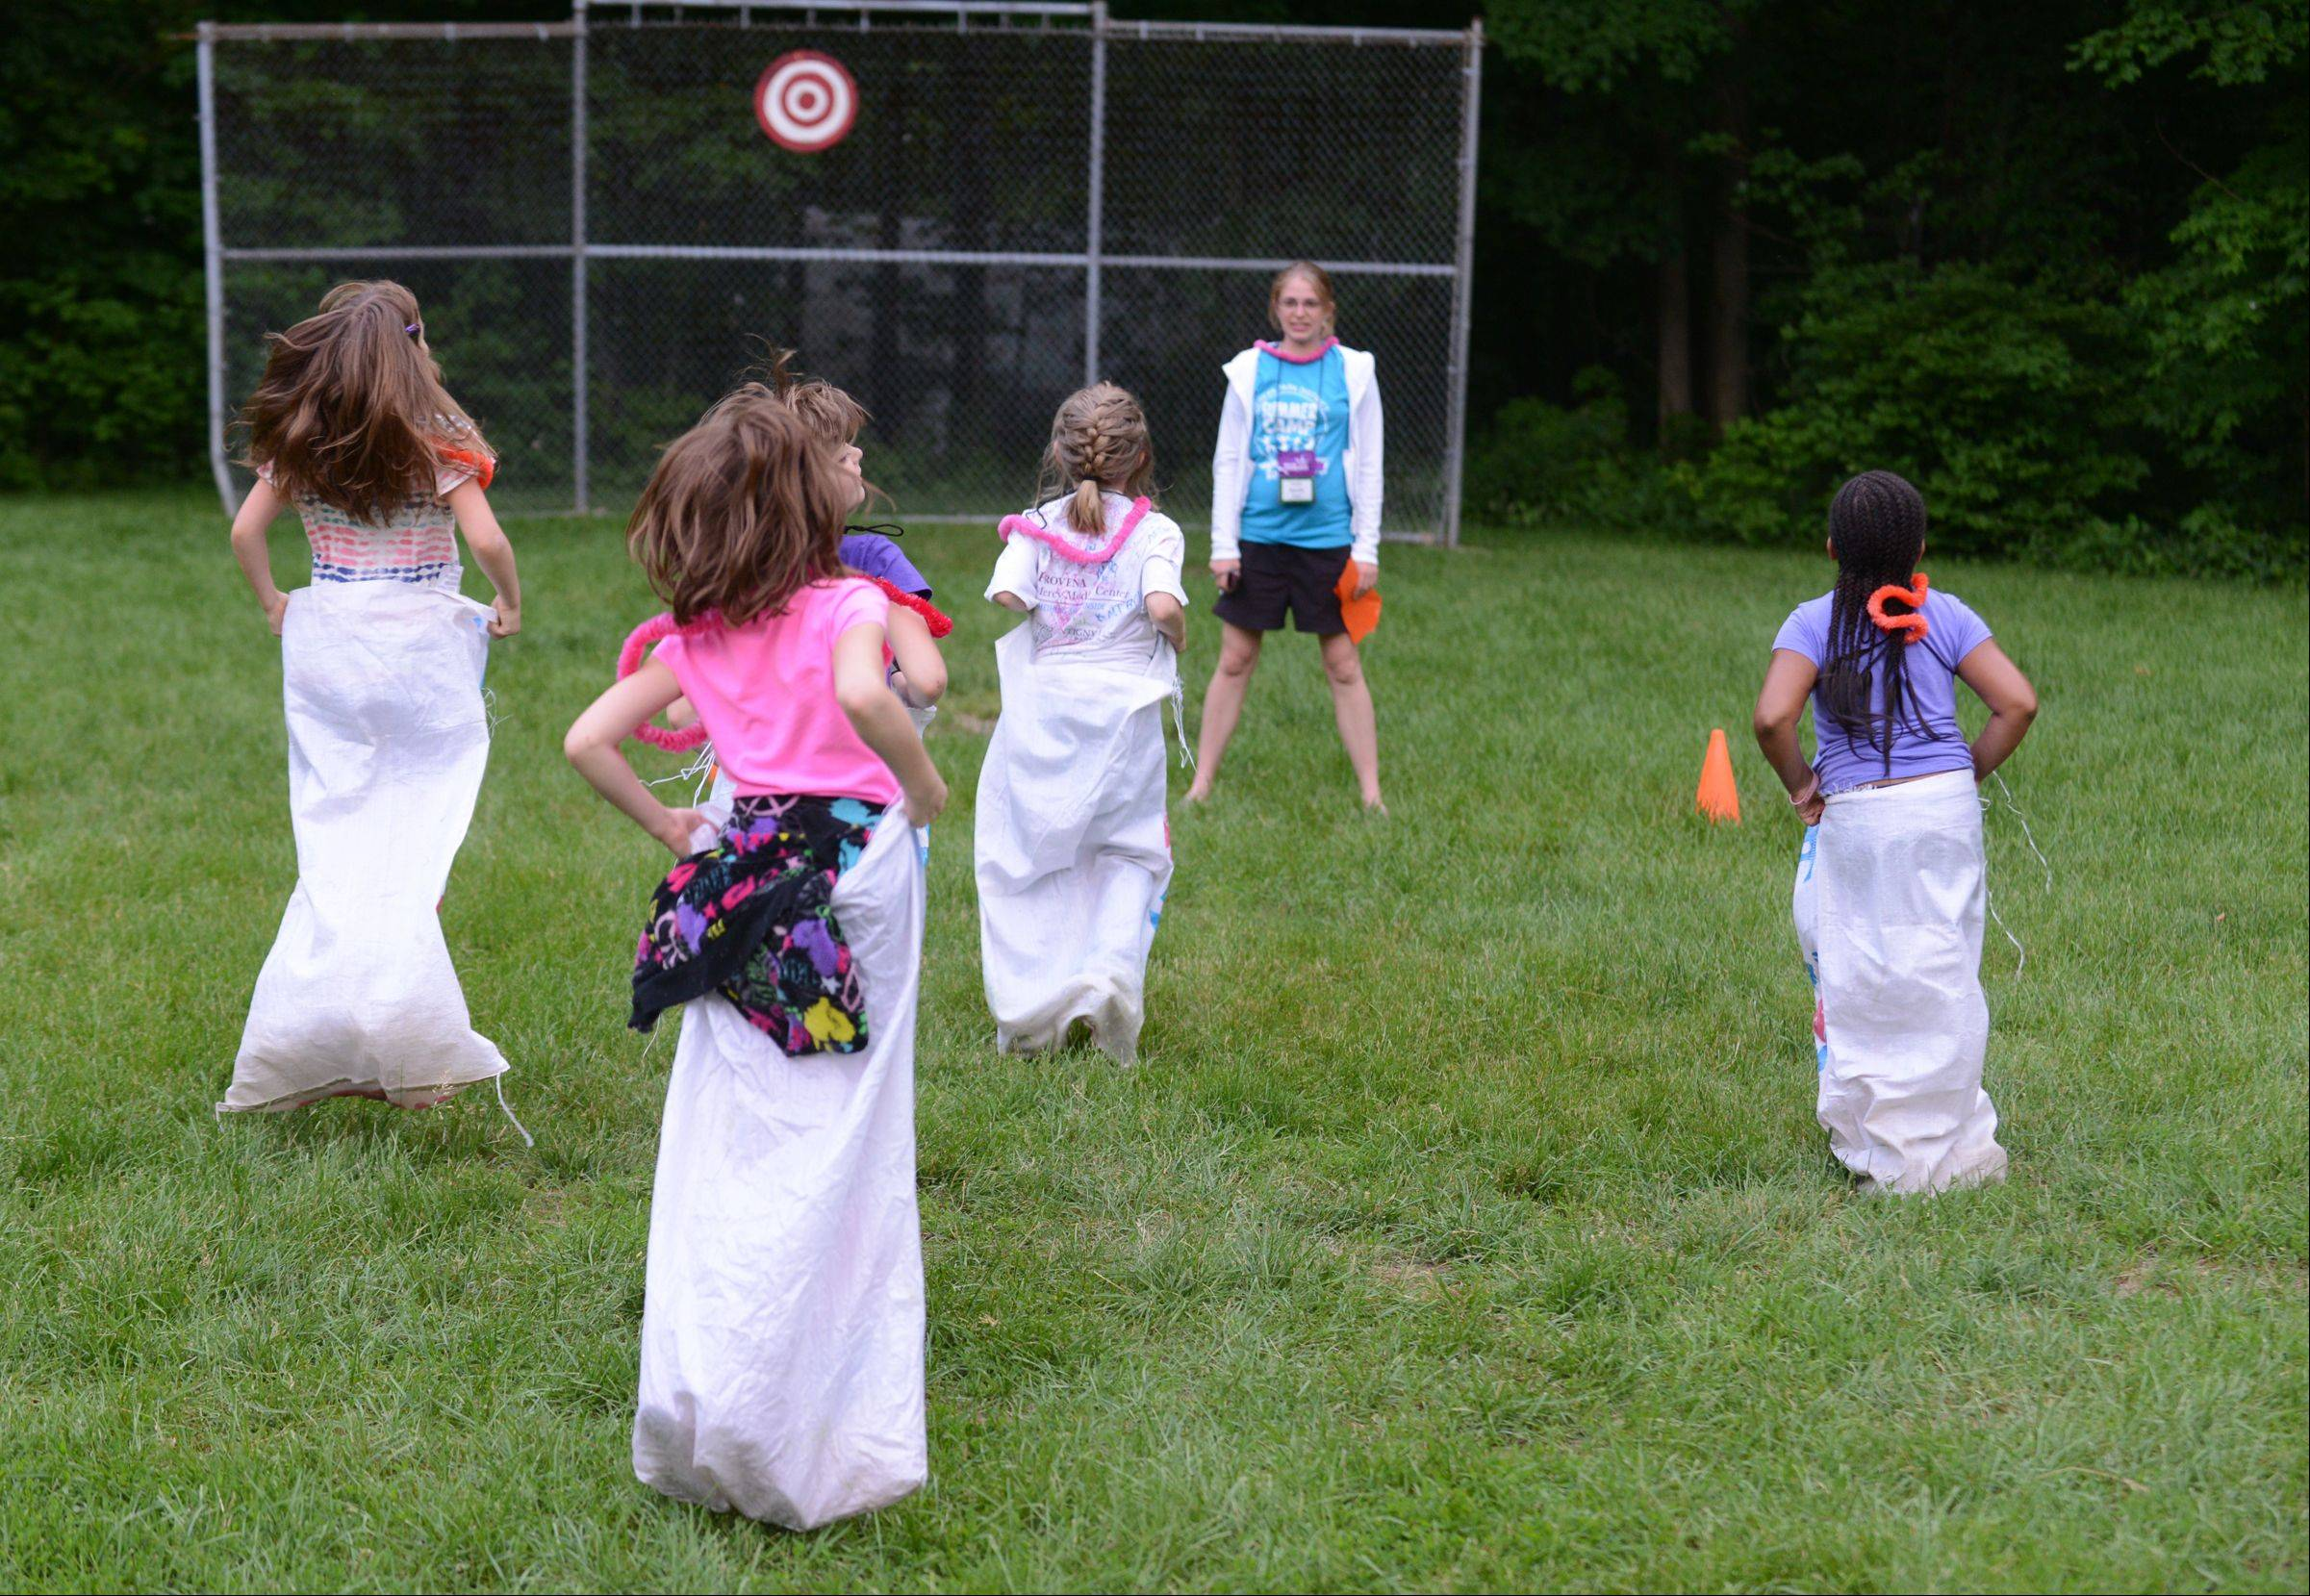 Royal Family Kids Camp counselor Sarah Walker of Geneva leads campers in a potato sack race as part of a camp luau.